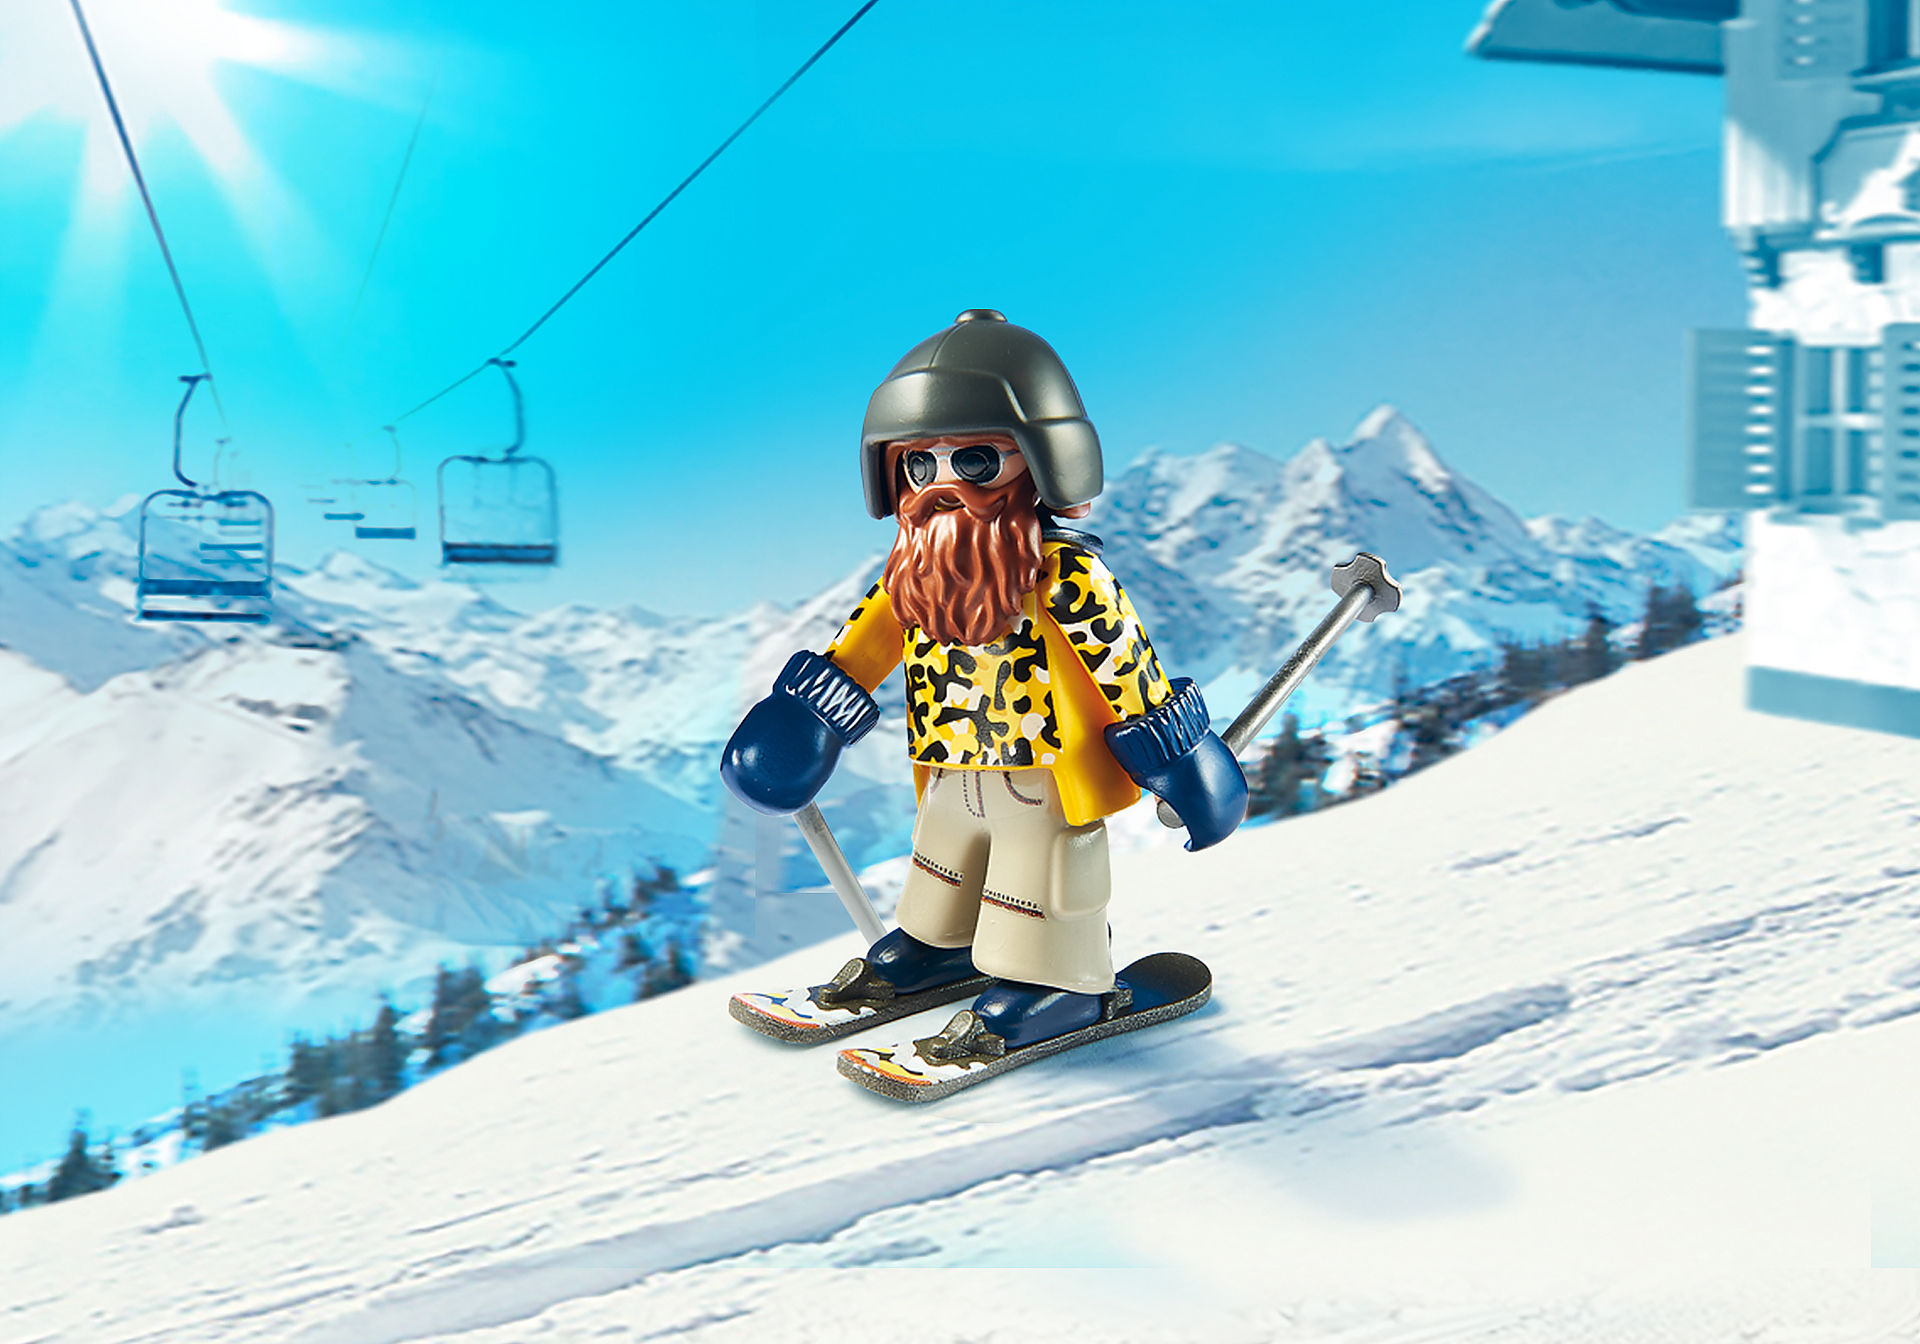 9284 Skier with Poles zoom image1